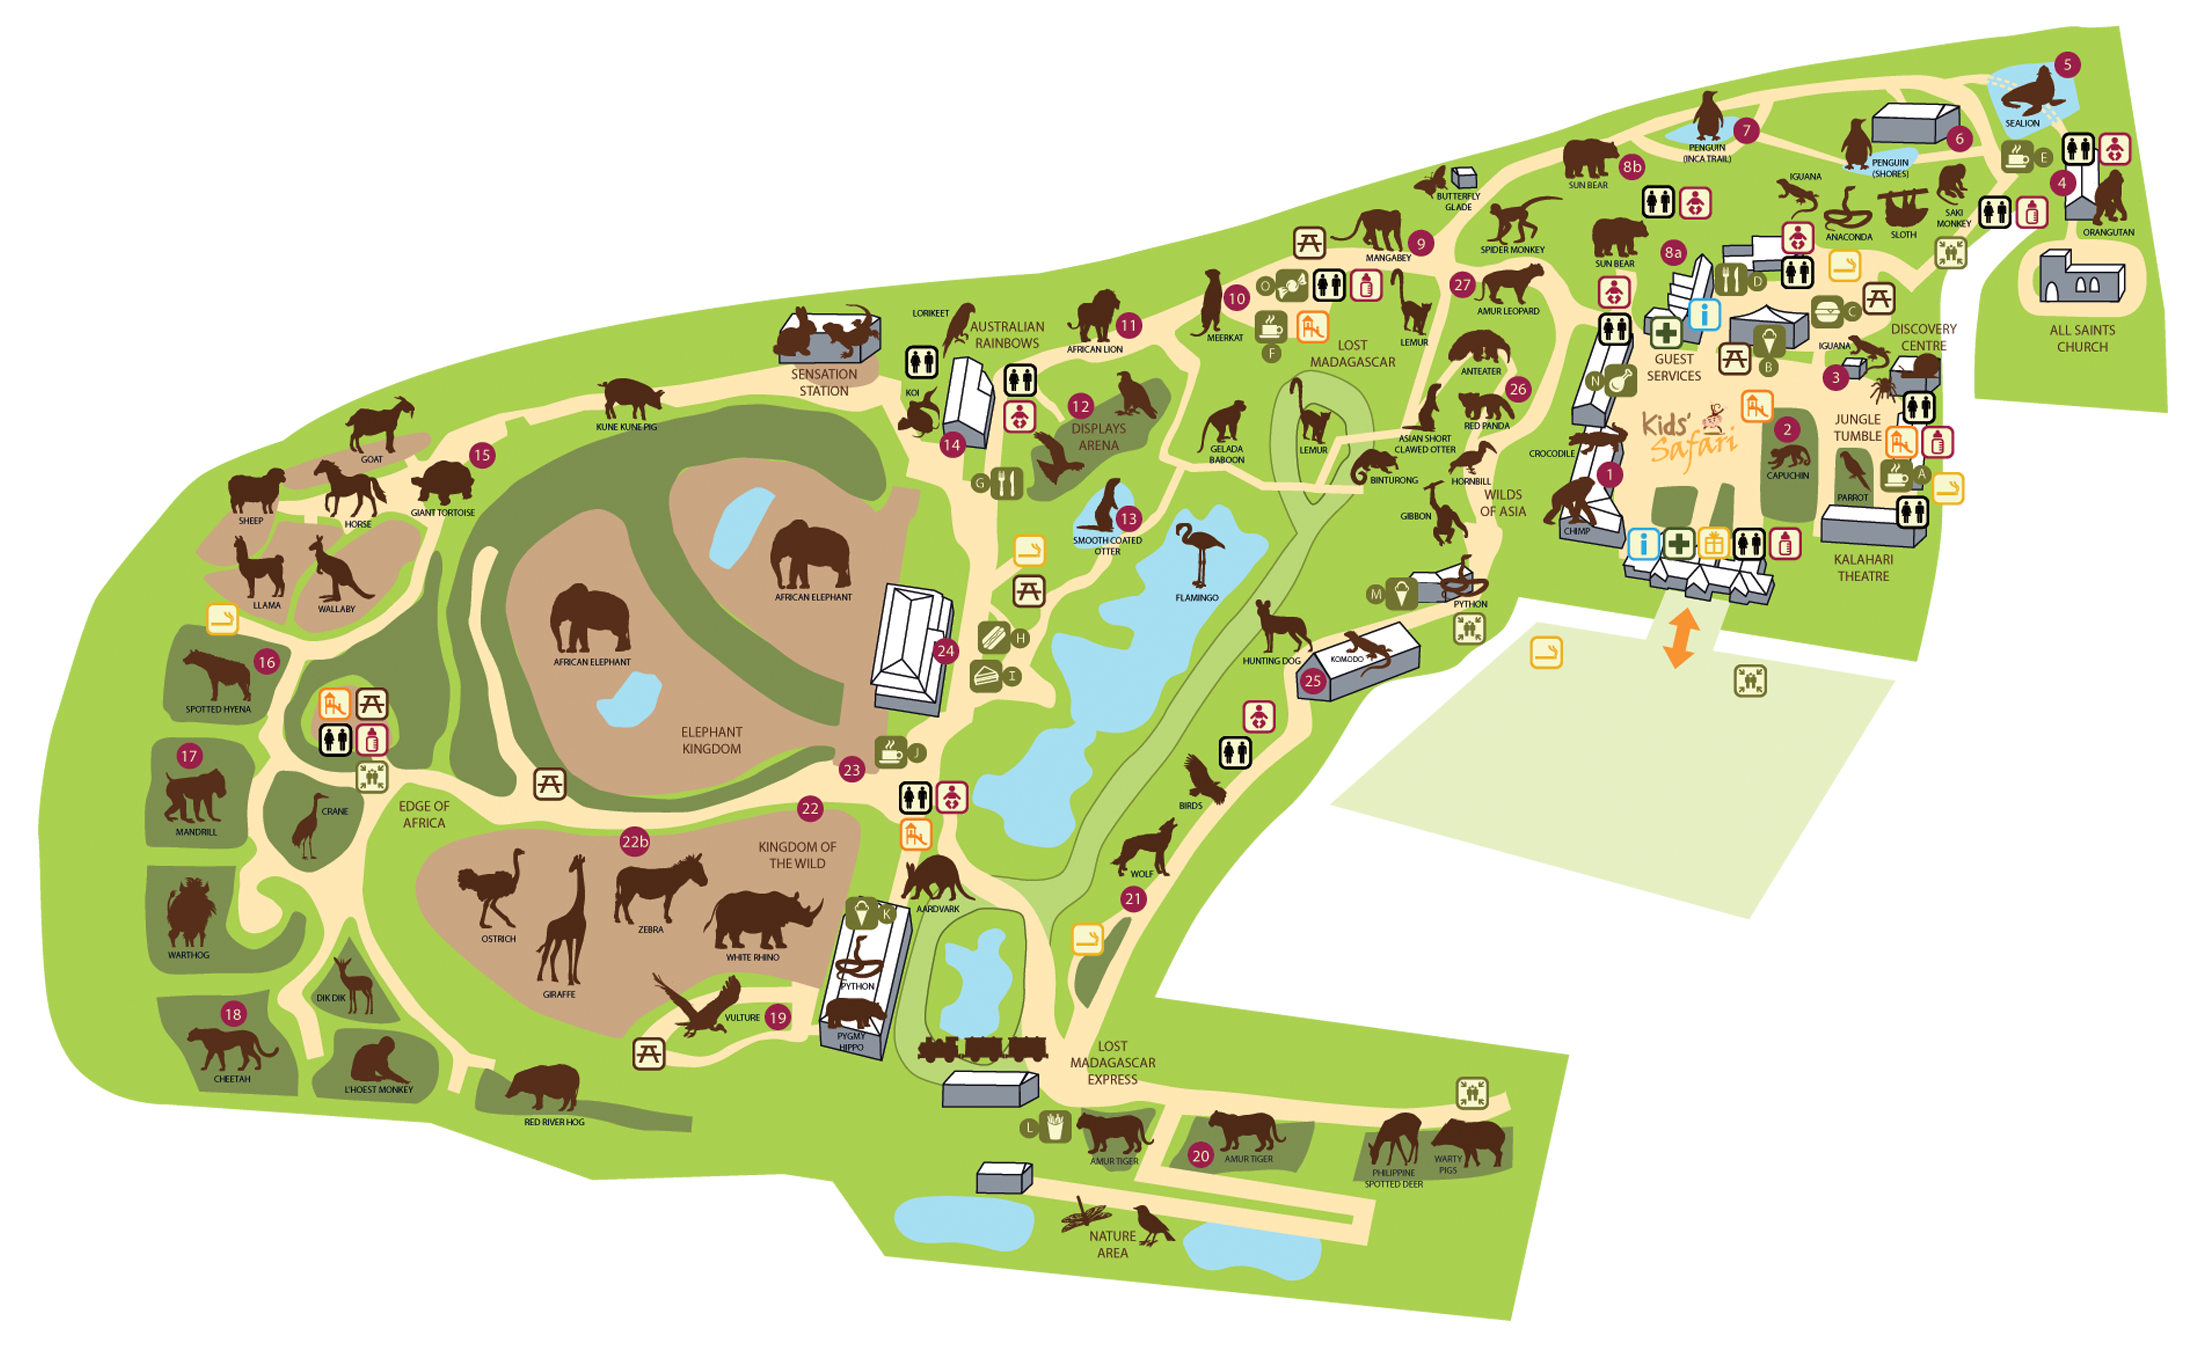 Colchester Zoo Map Zoo Map   Colchester Zoo | Zoo Maps | Zoo map, Colchester zoo, Map